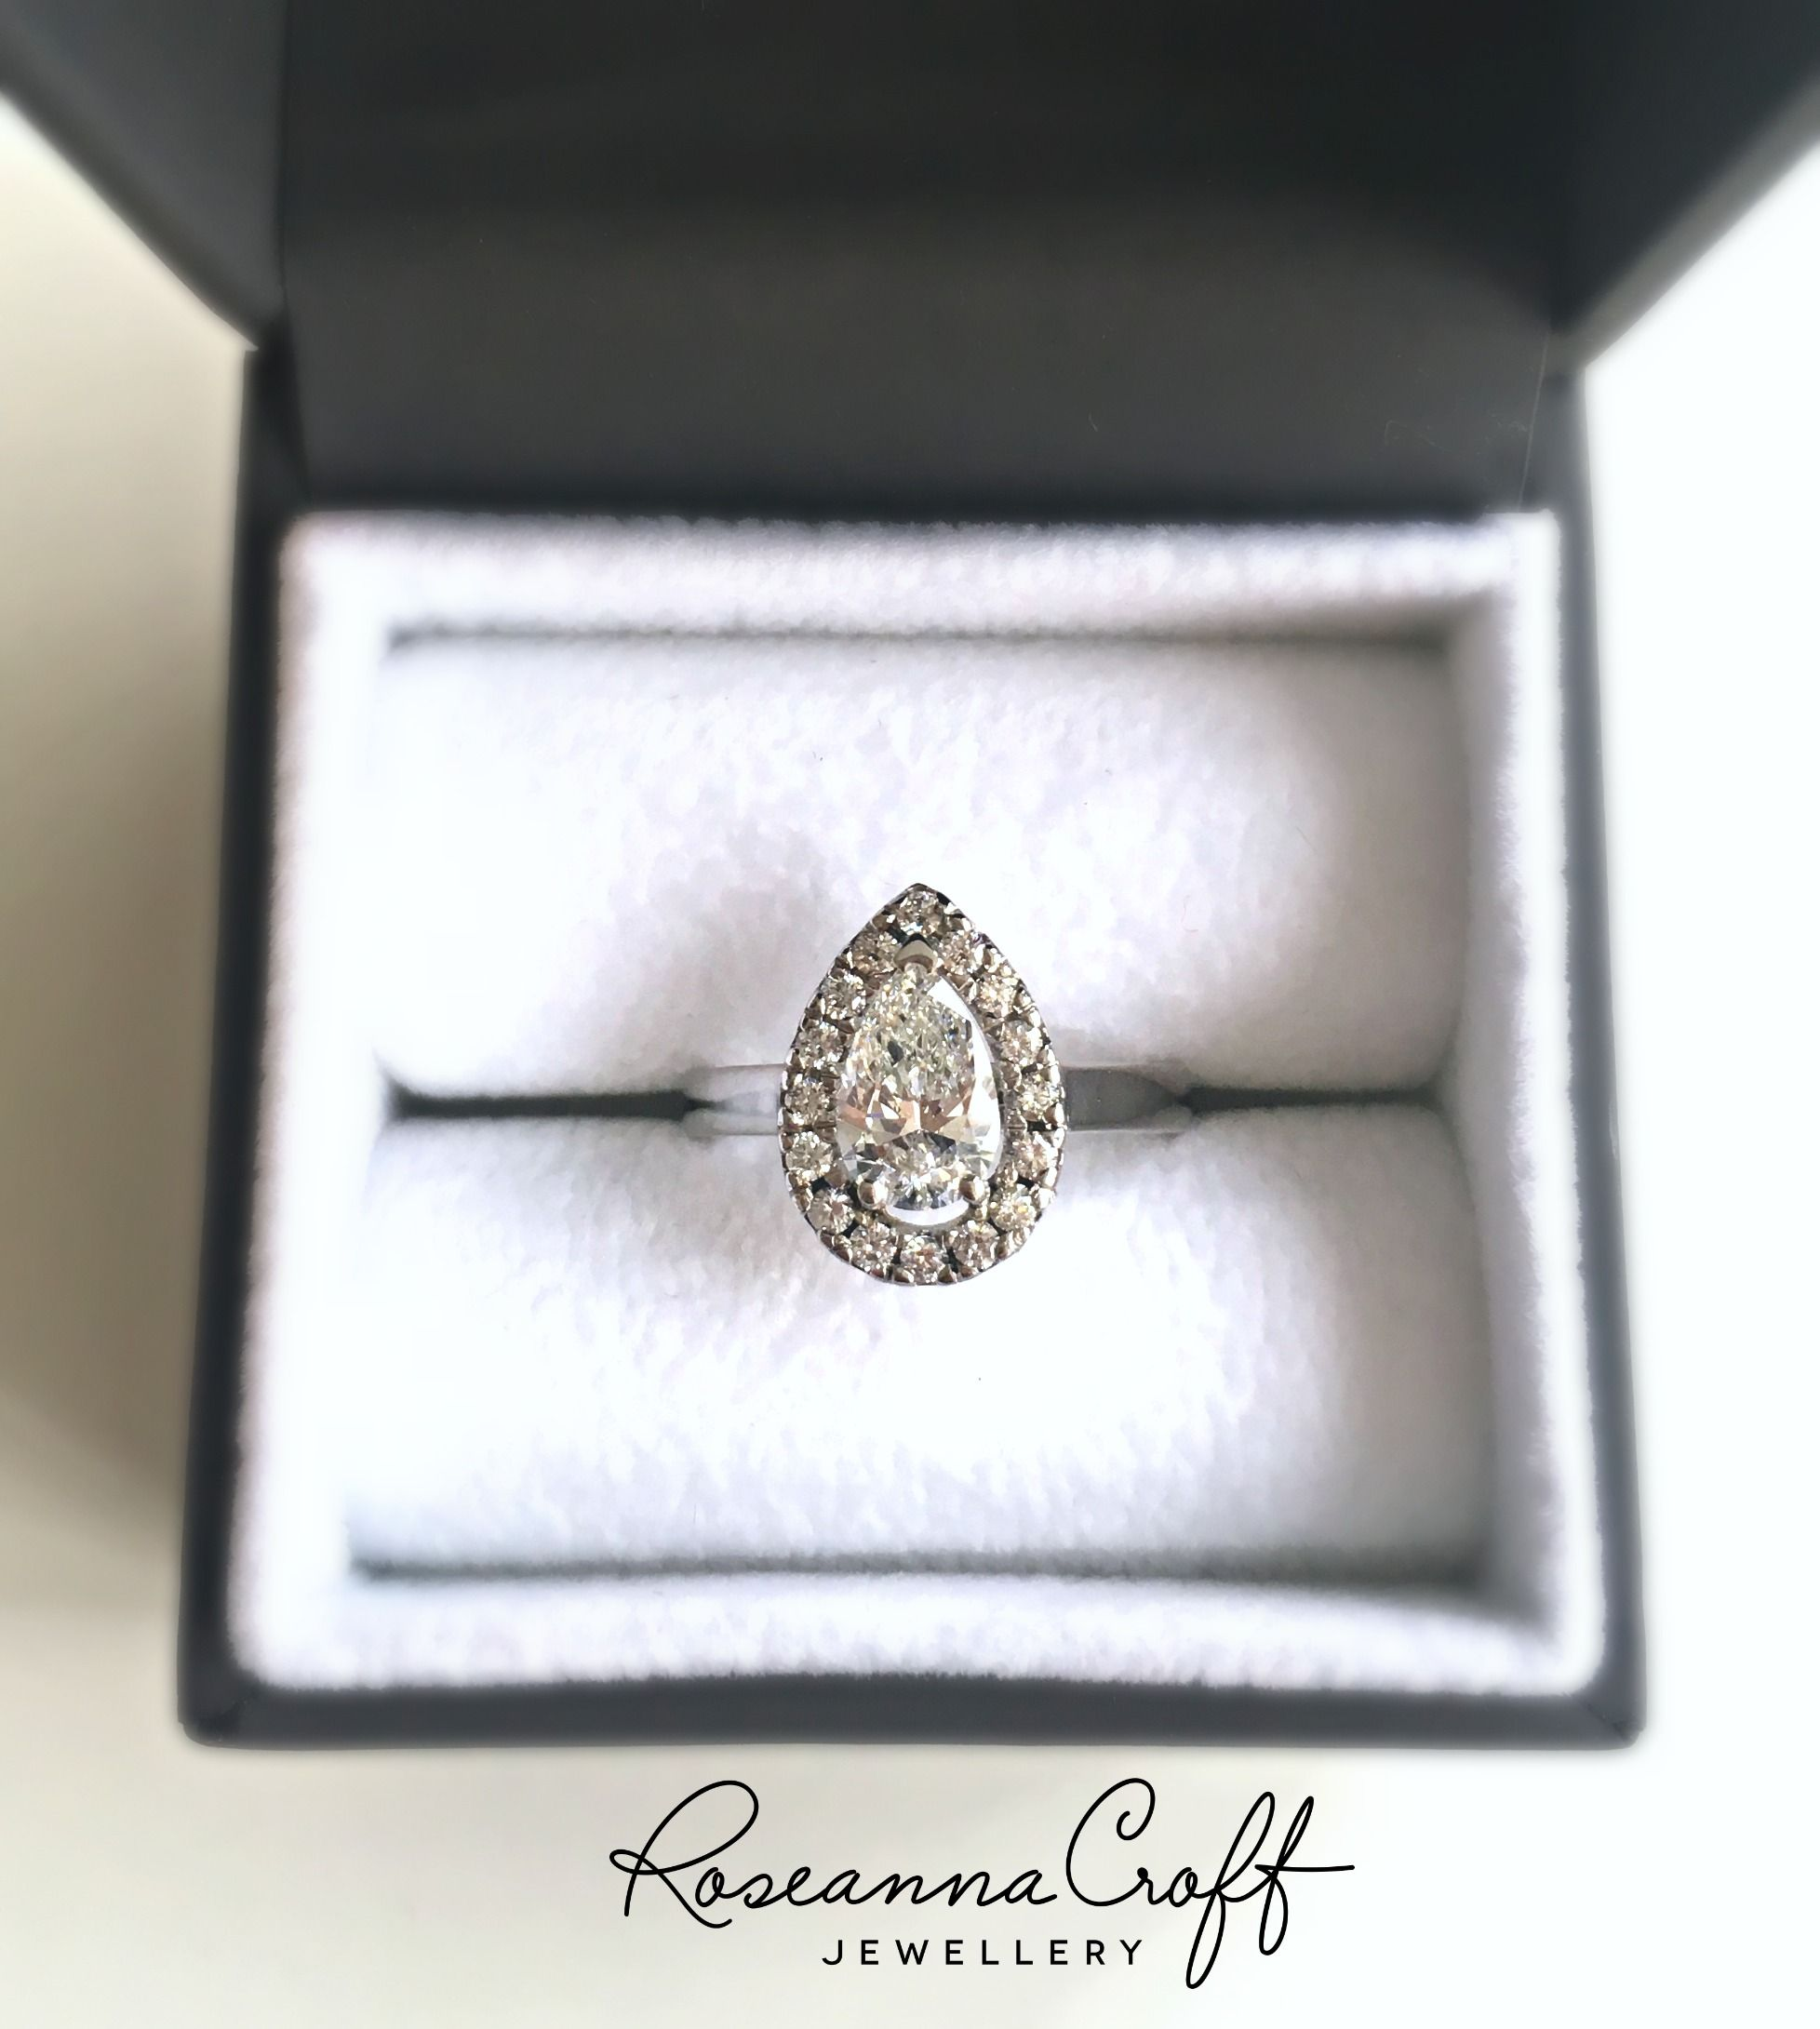 pear princess cut winston k harry gold in cute ring engagement vintage wedding shaped rings rose stone